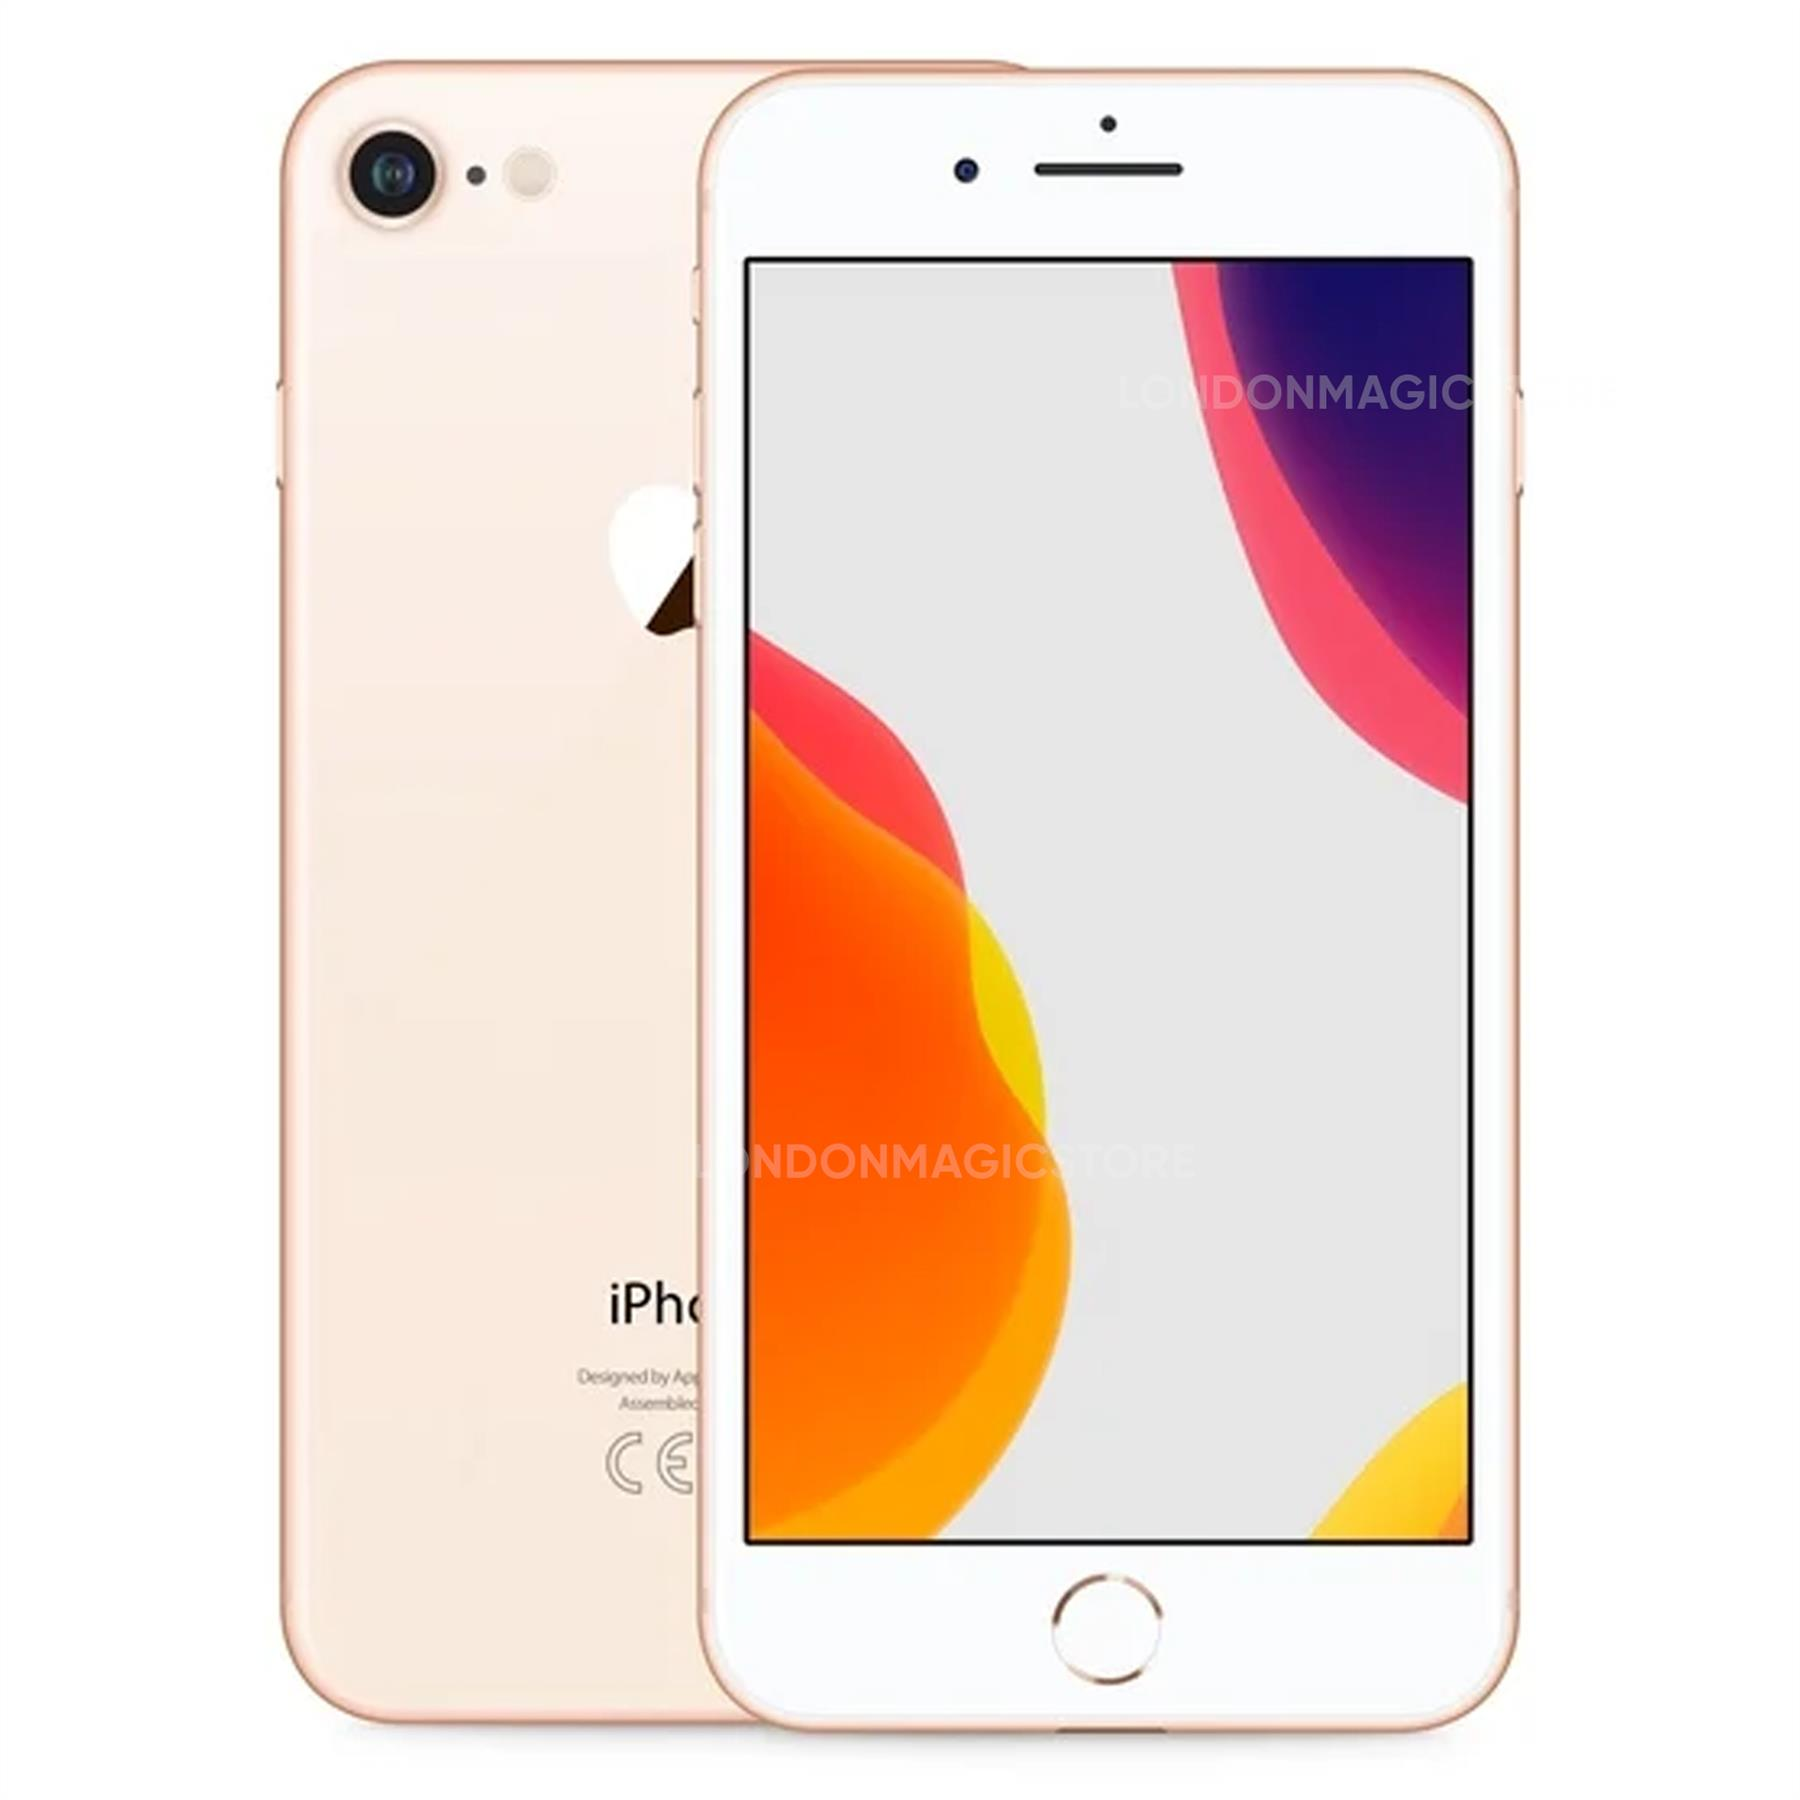 thumbnail 3 - Brand New Apple iPhone 8 64GB 256GB Unlocked - All Colours - With Original Box